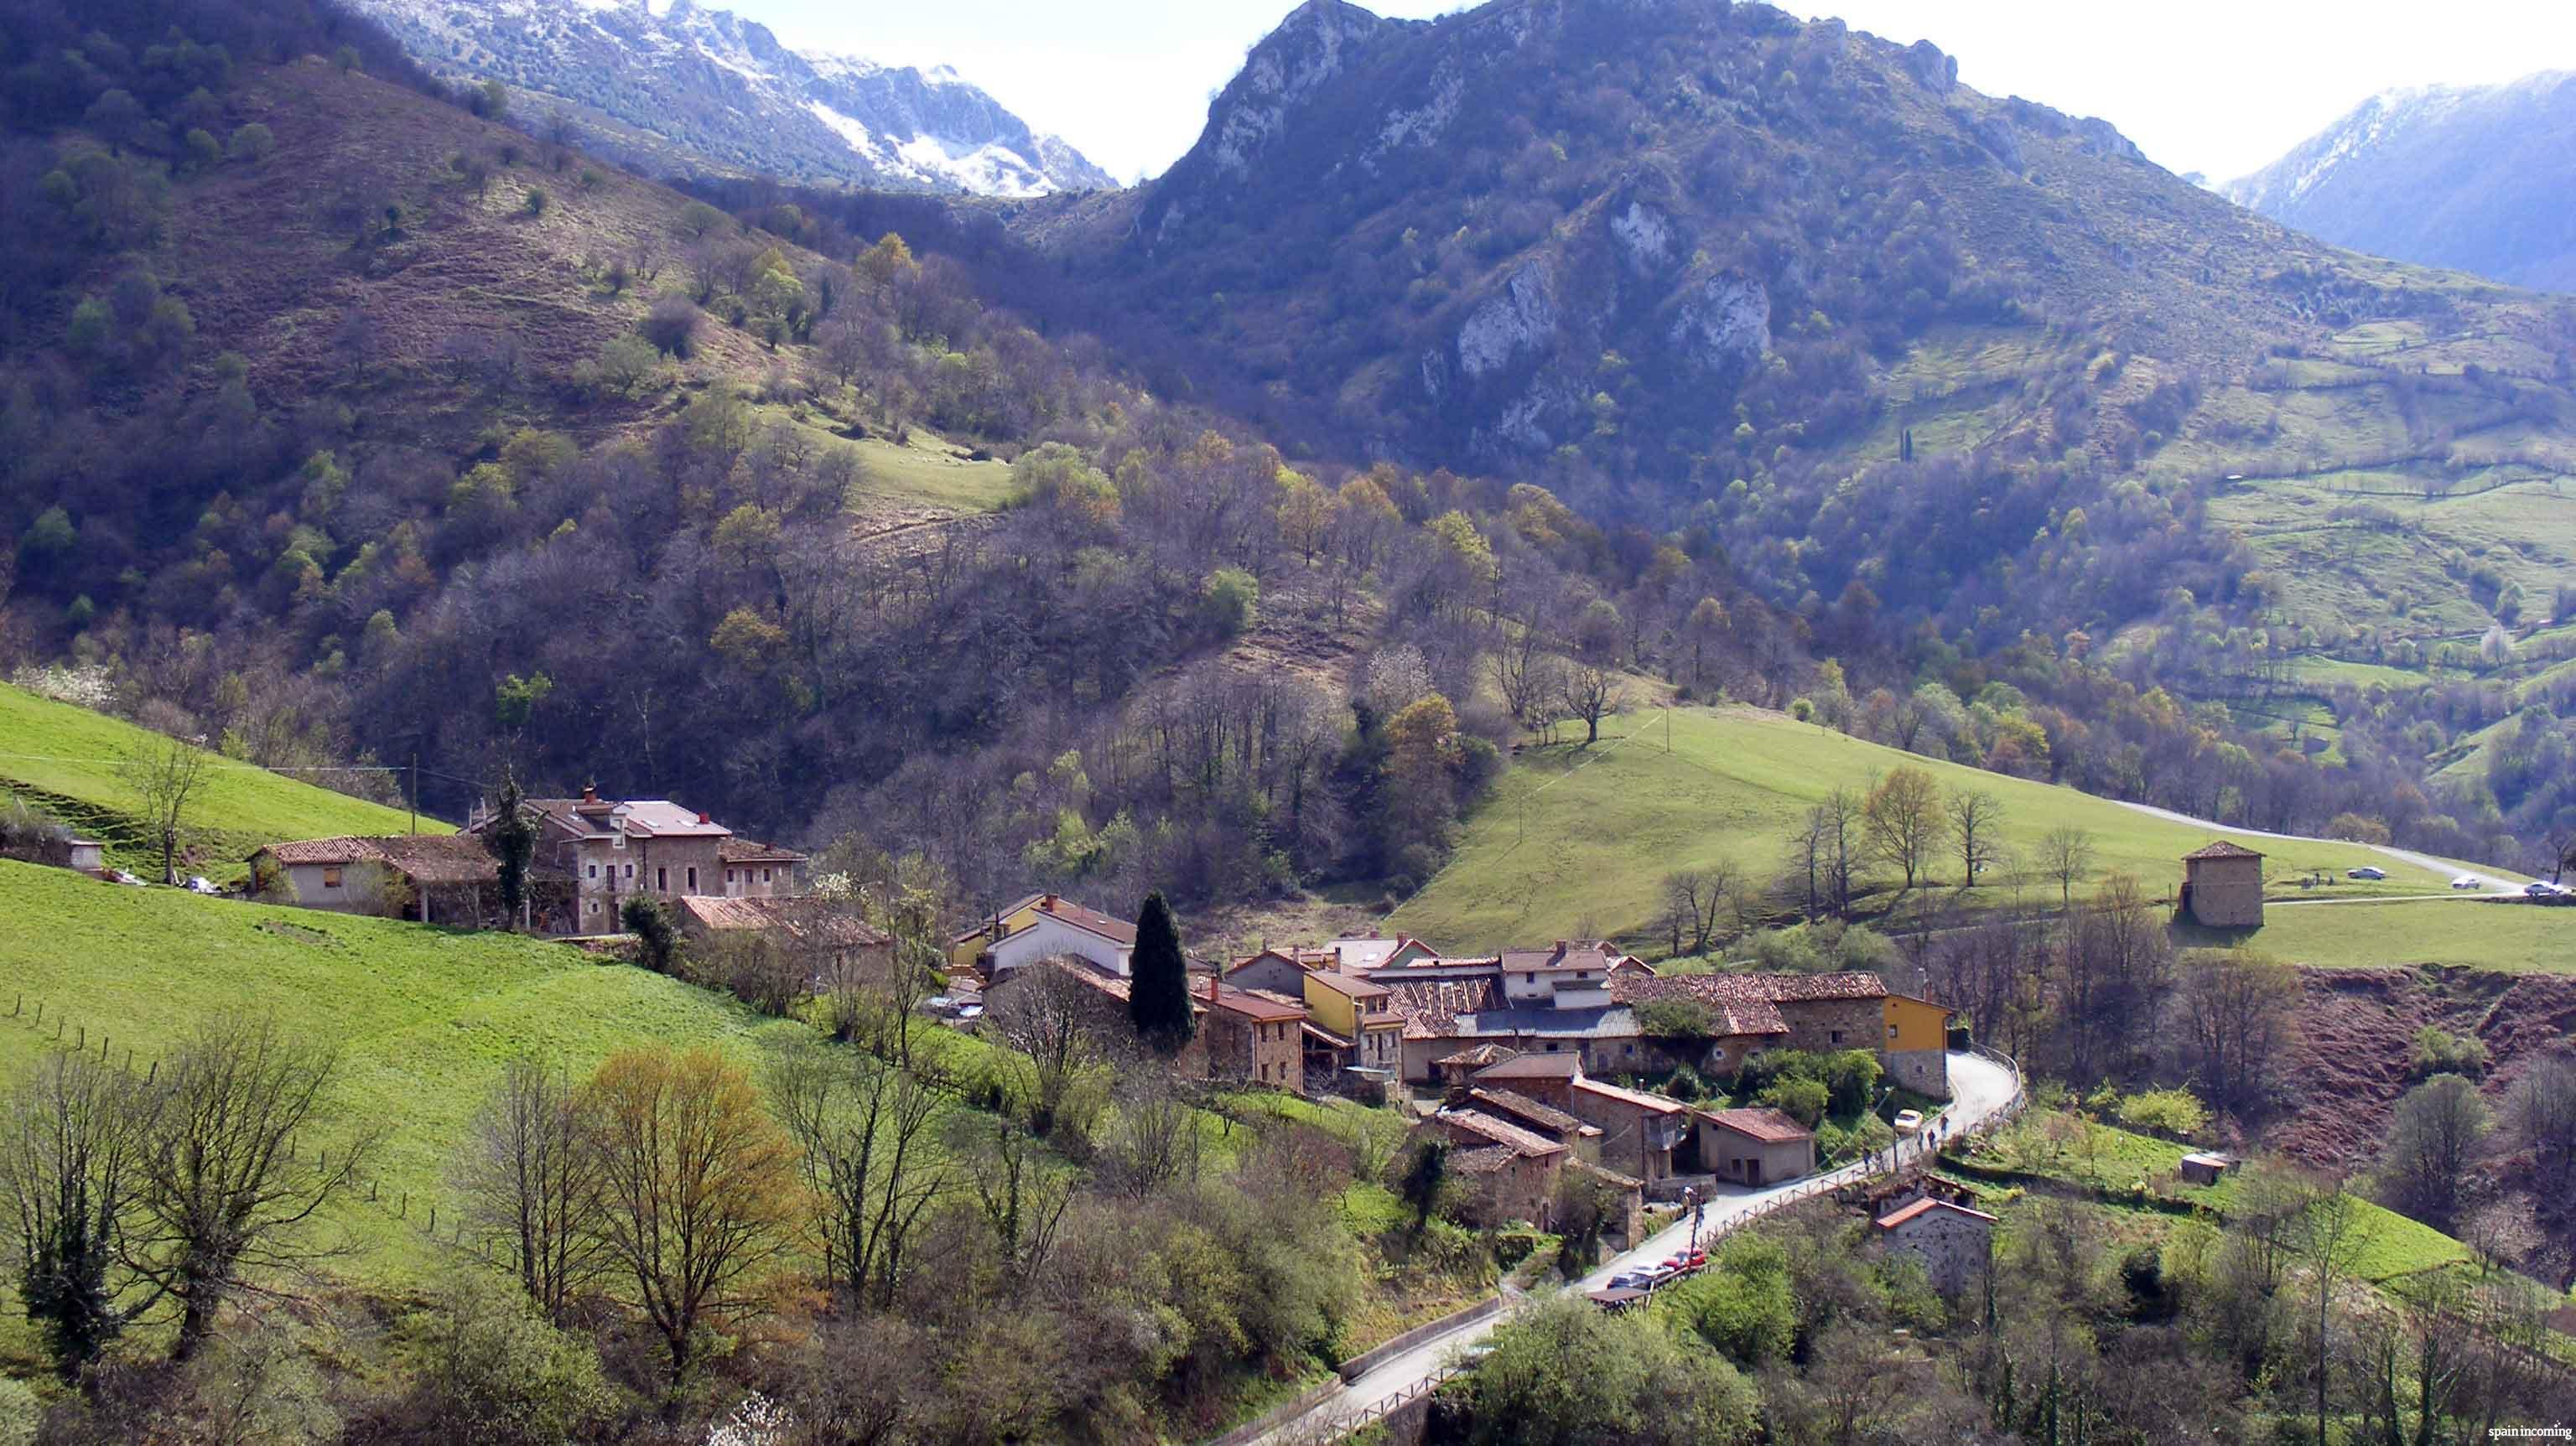 10 ideas for organize your trip to Spain - Landscape in Asturias